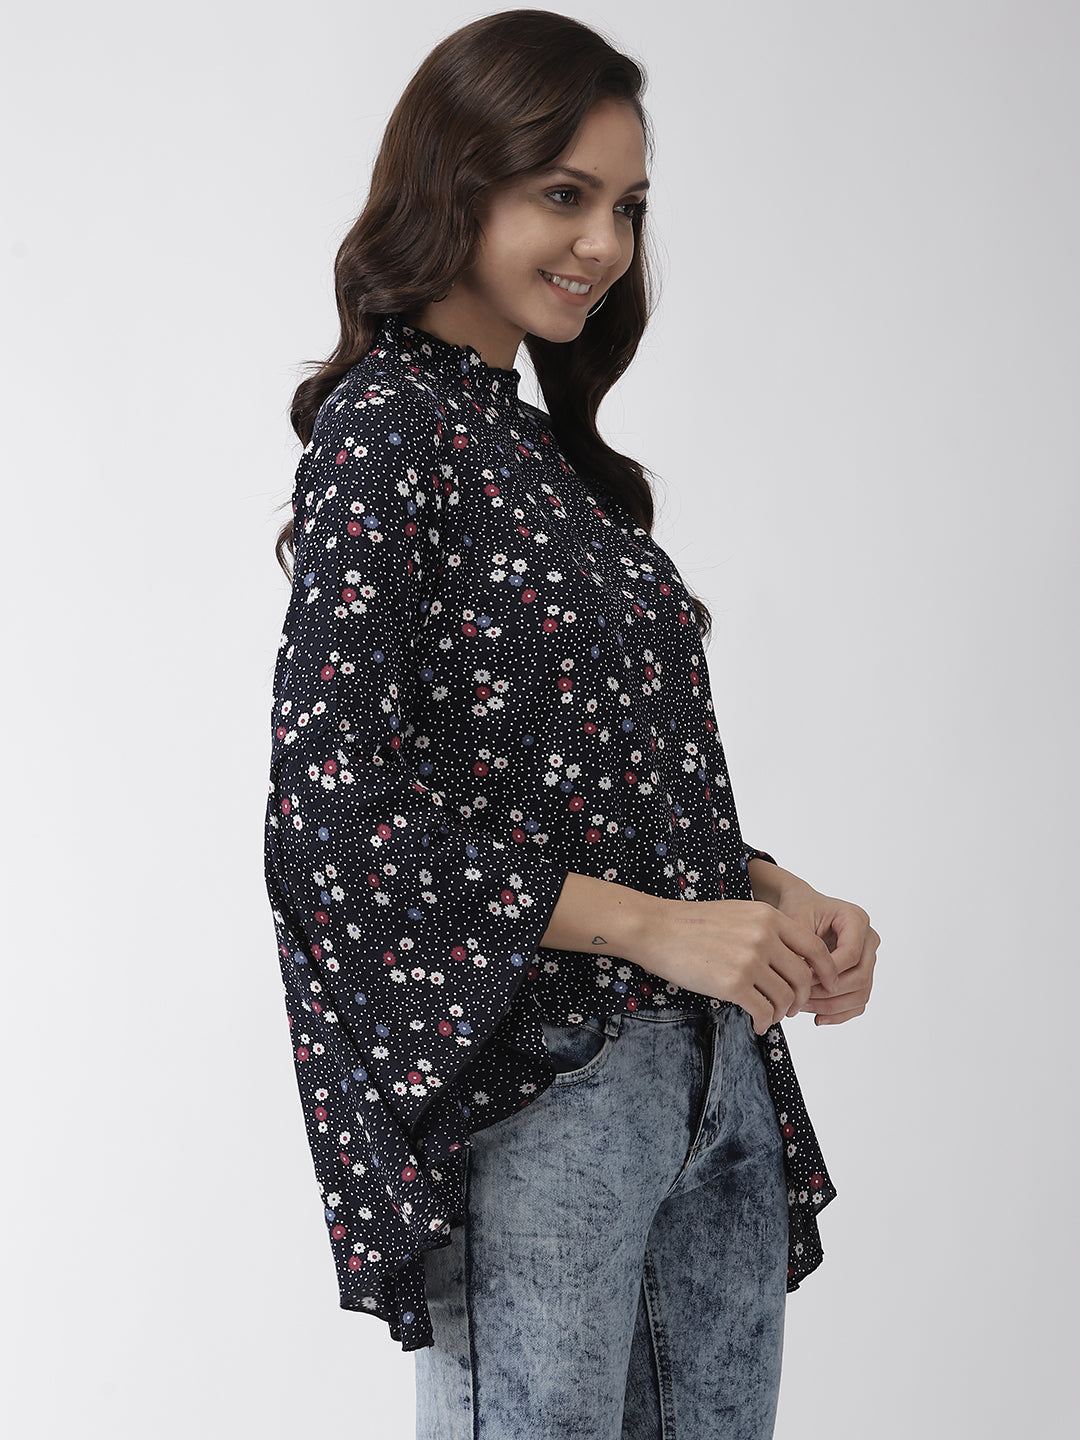 Rue Collection Women Navy Blue & White Floral Print Top